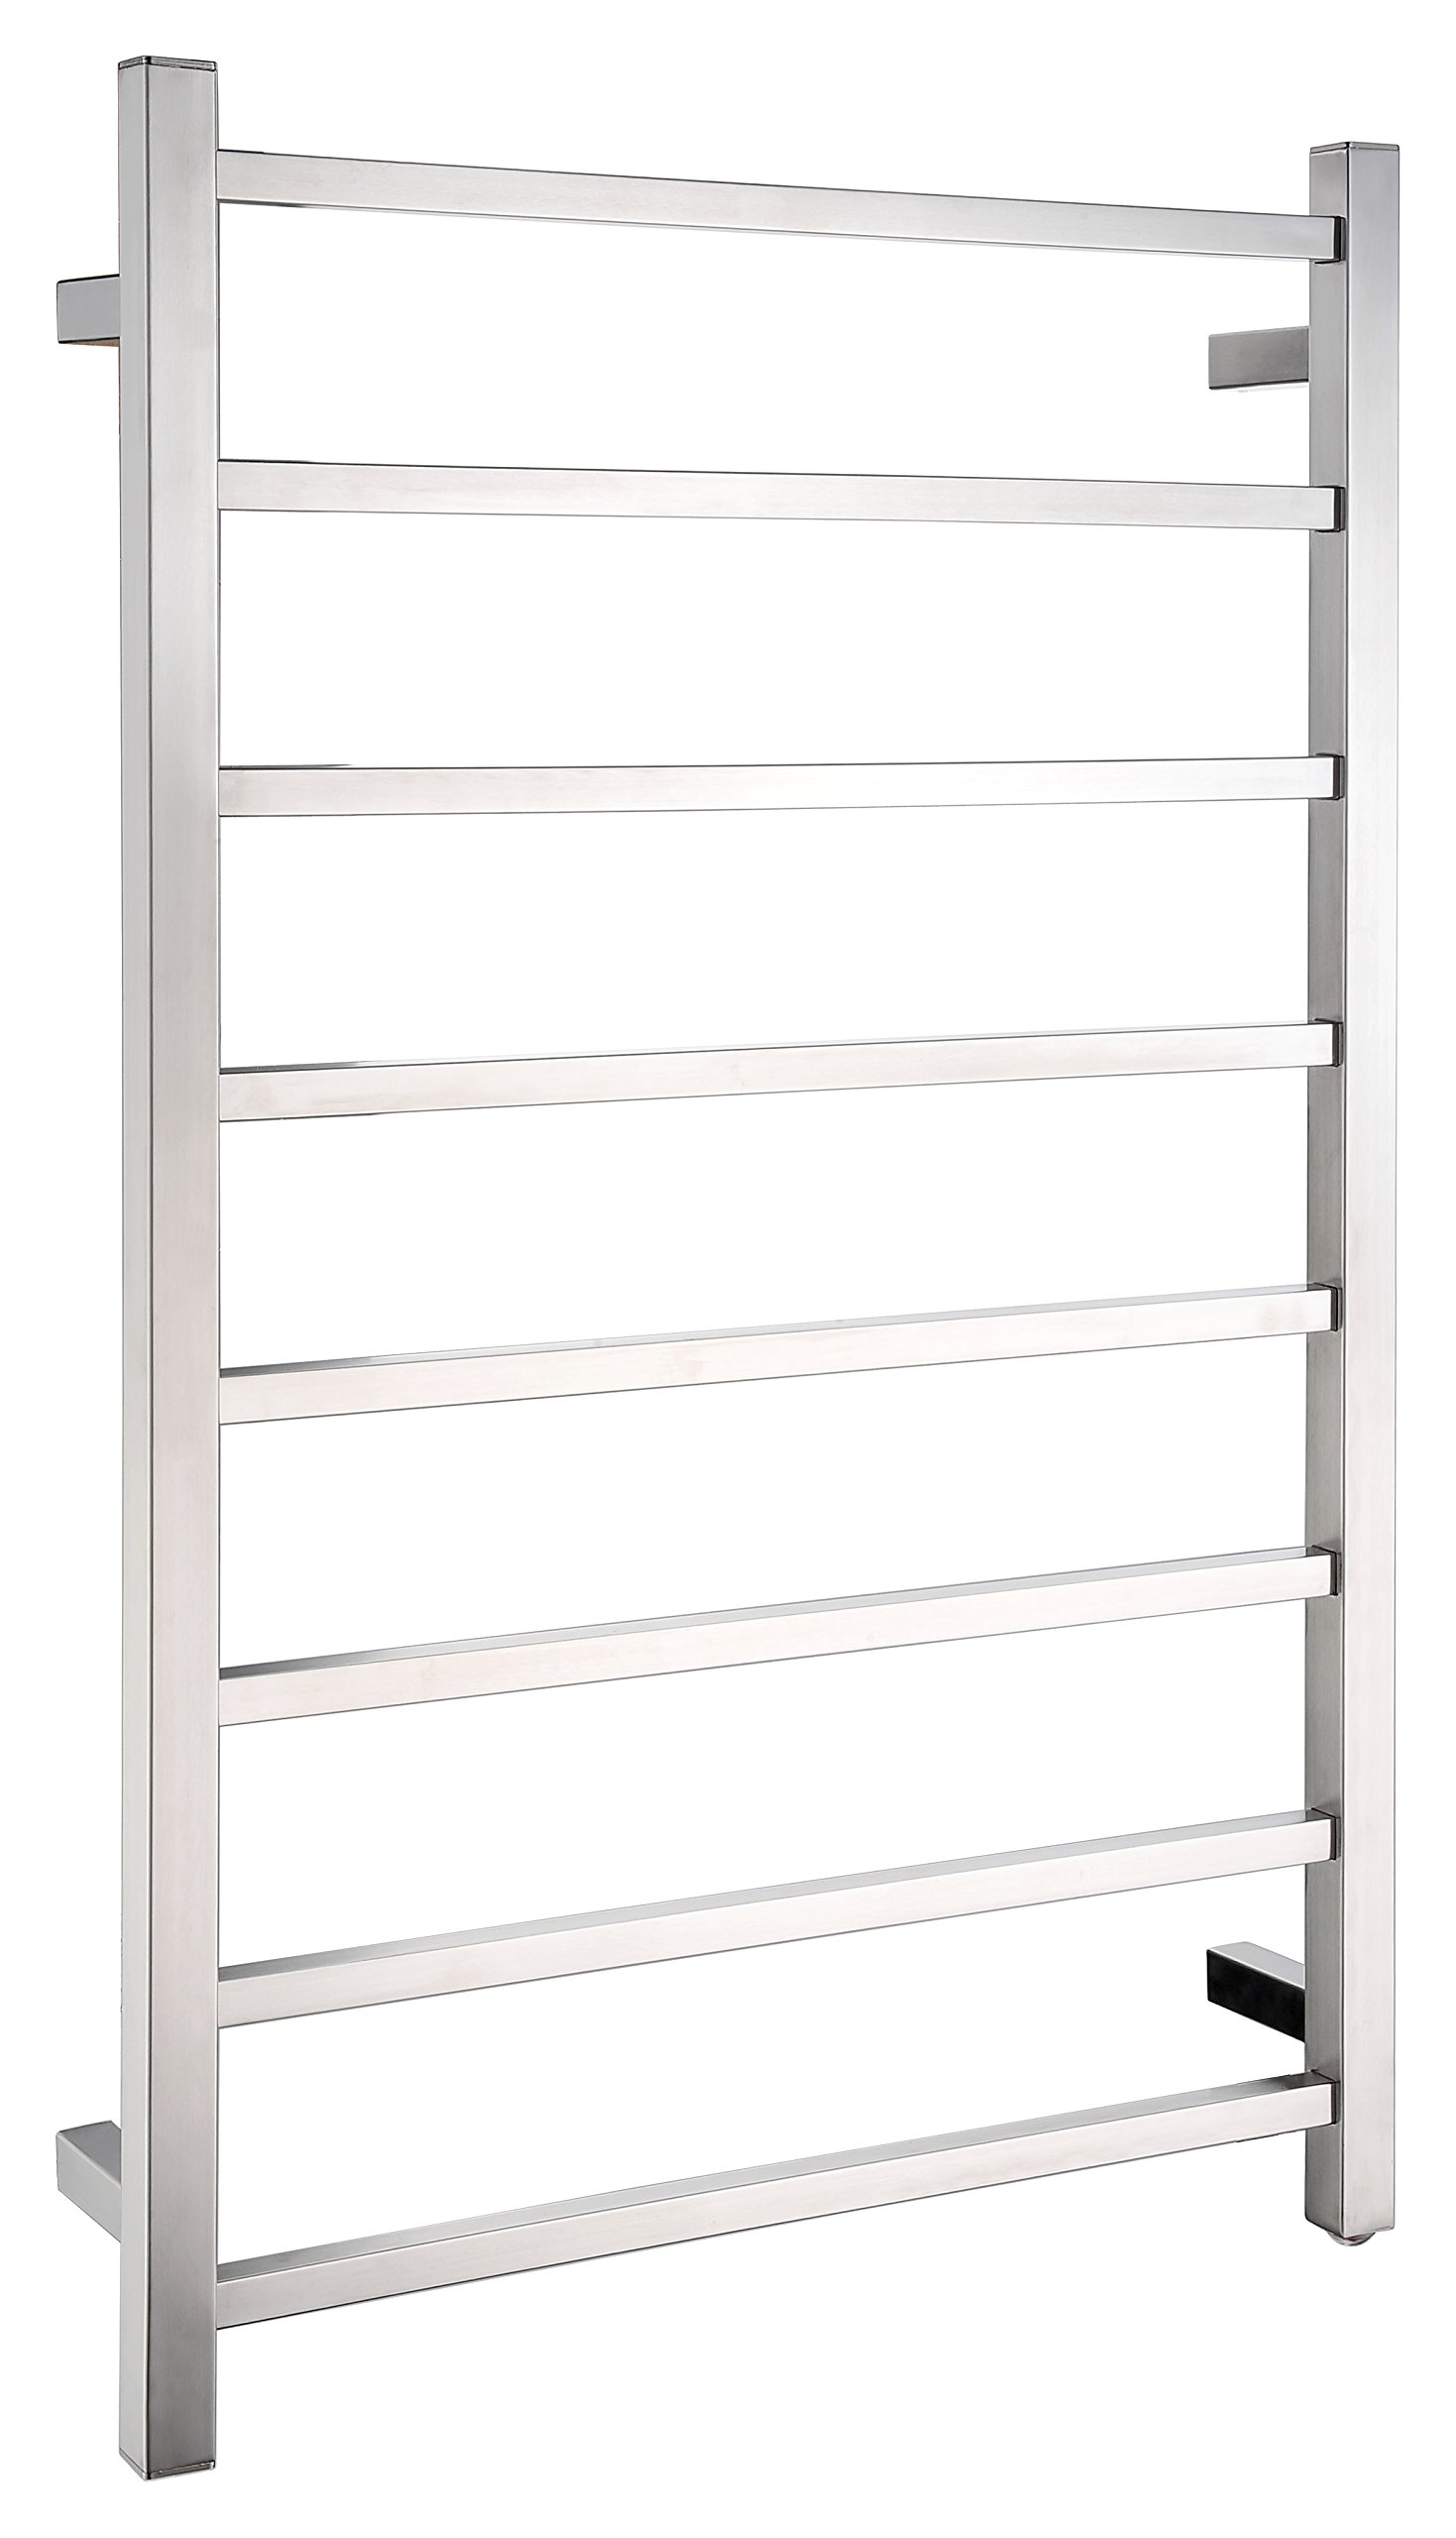 ANZZI Bell Modern 8-Bar Wall Mounted Towel Warmer in Brushed Nickel | Stainless Steel Electric Heater Tower Drying Rack for Bathrooms | TW-AZ026BN